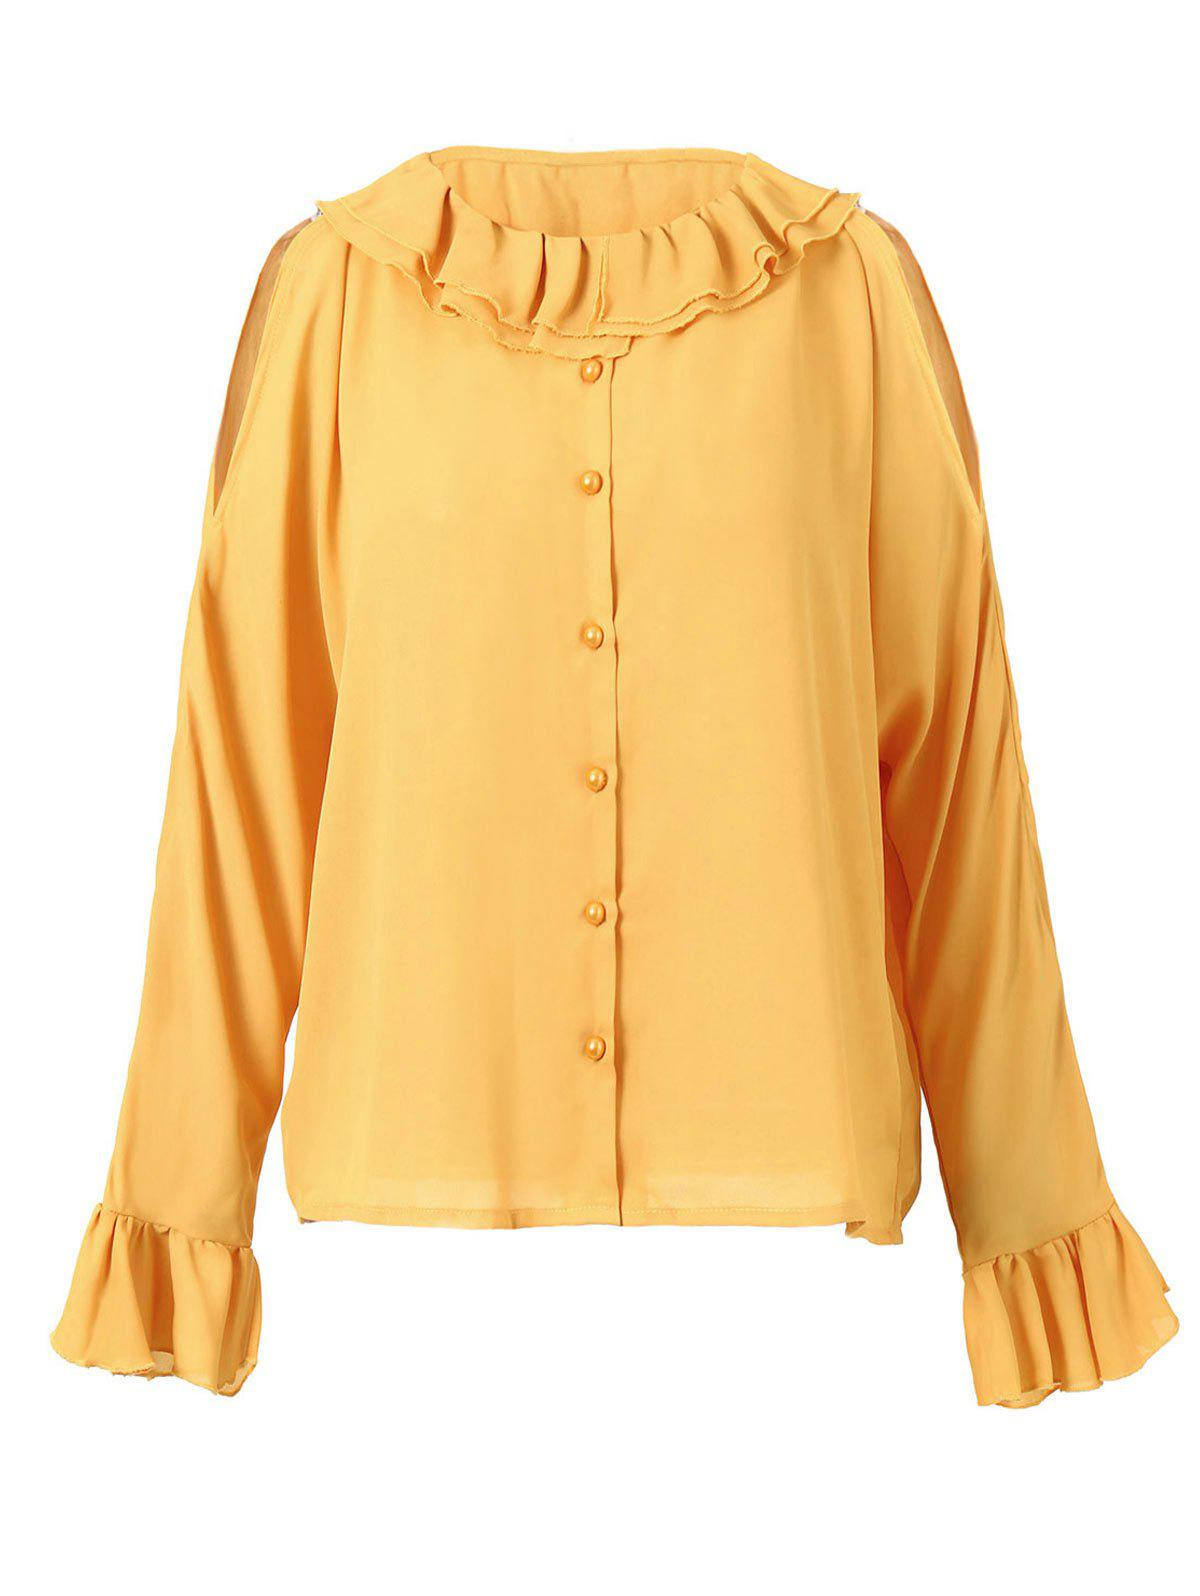 Cold Shoulder Button Up Flounced Blouse - BRIGHT YELLOW L